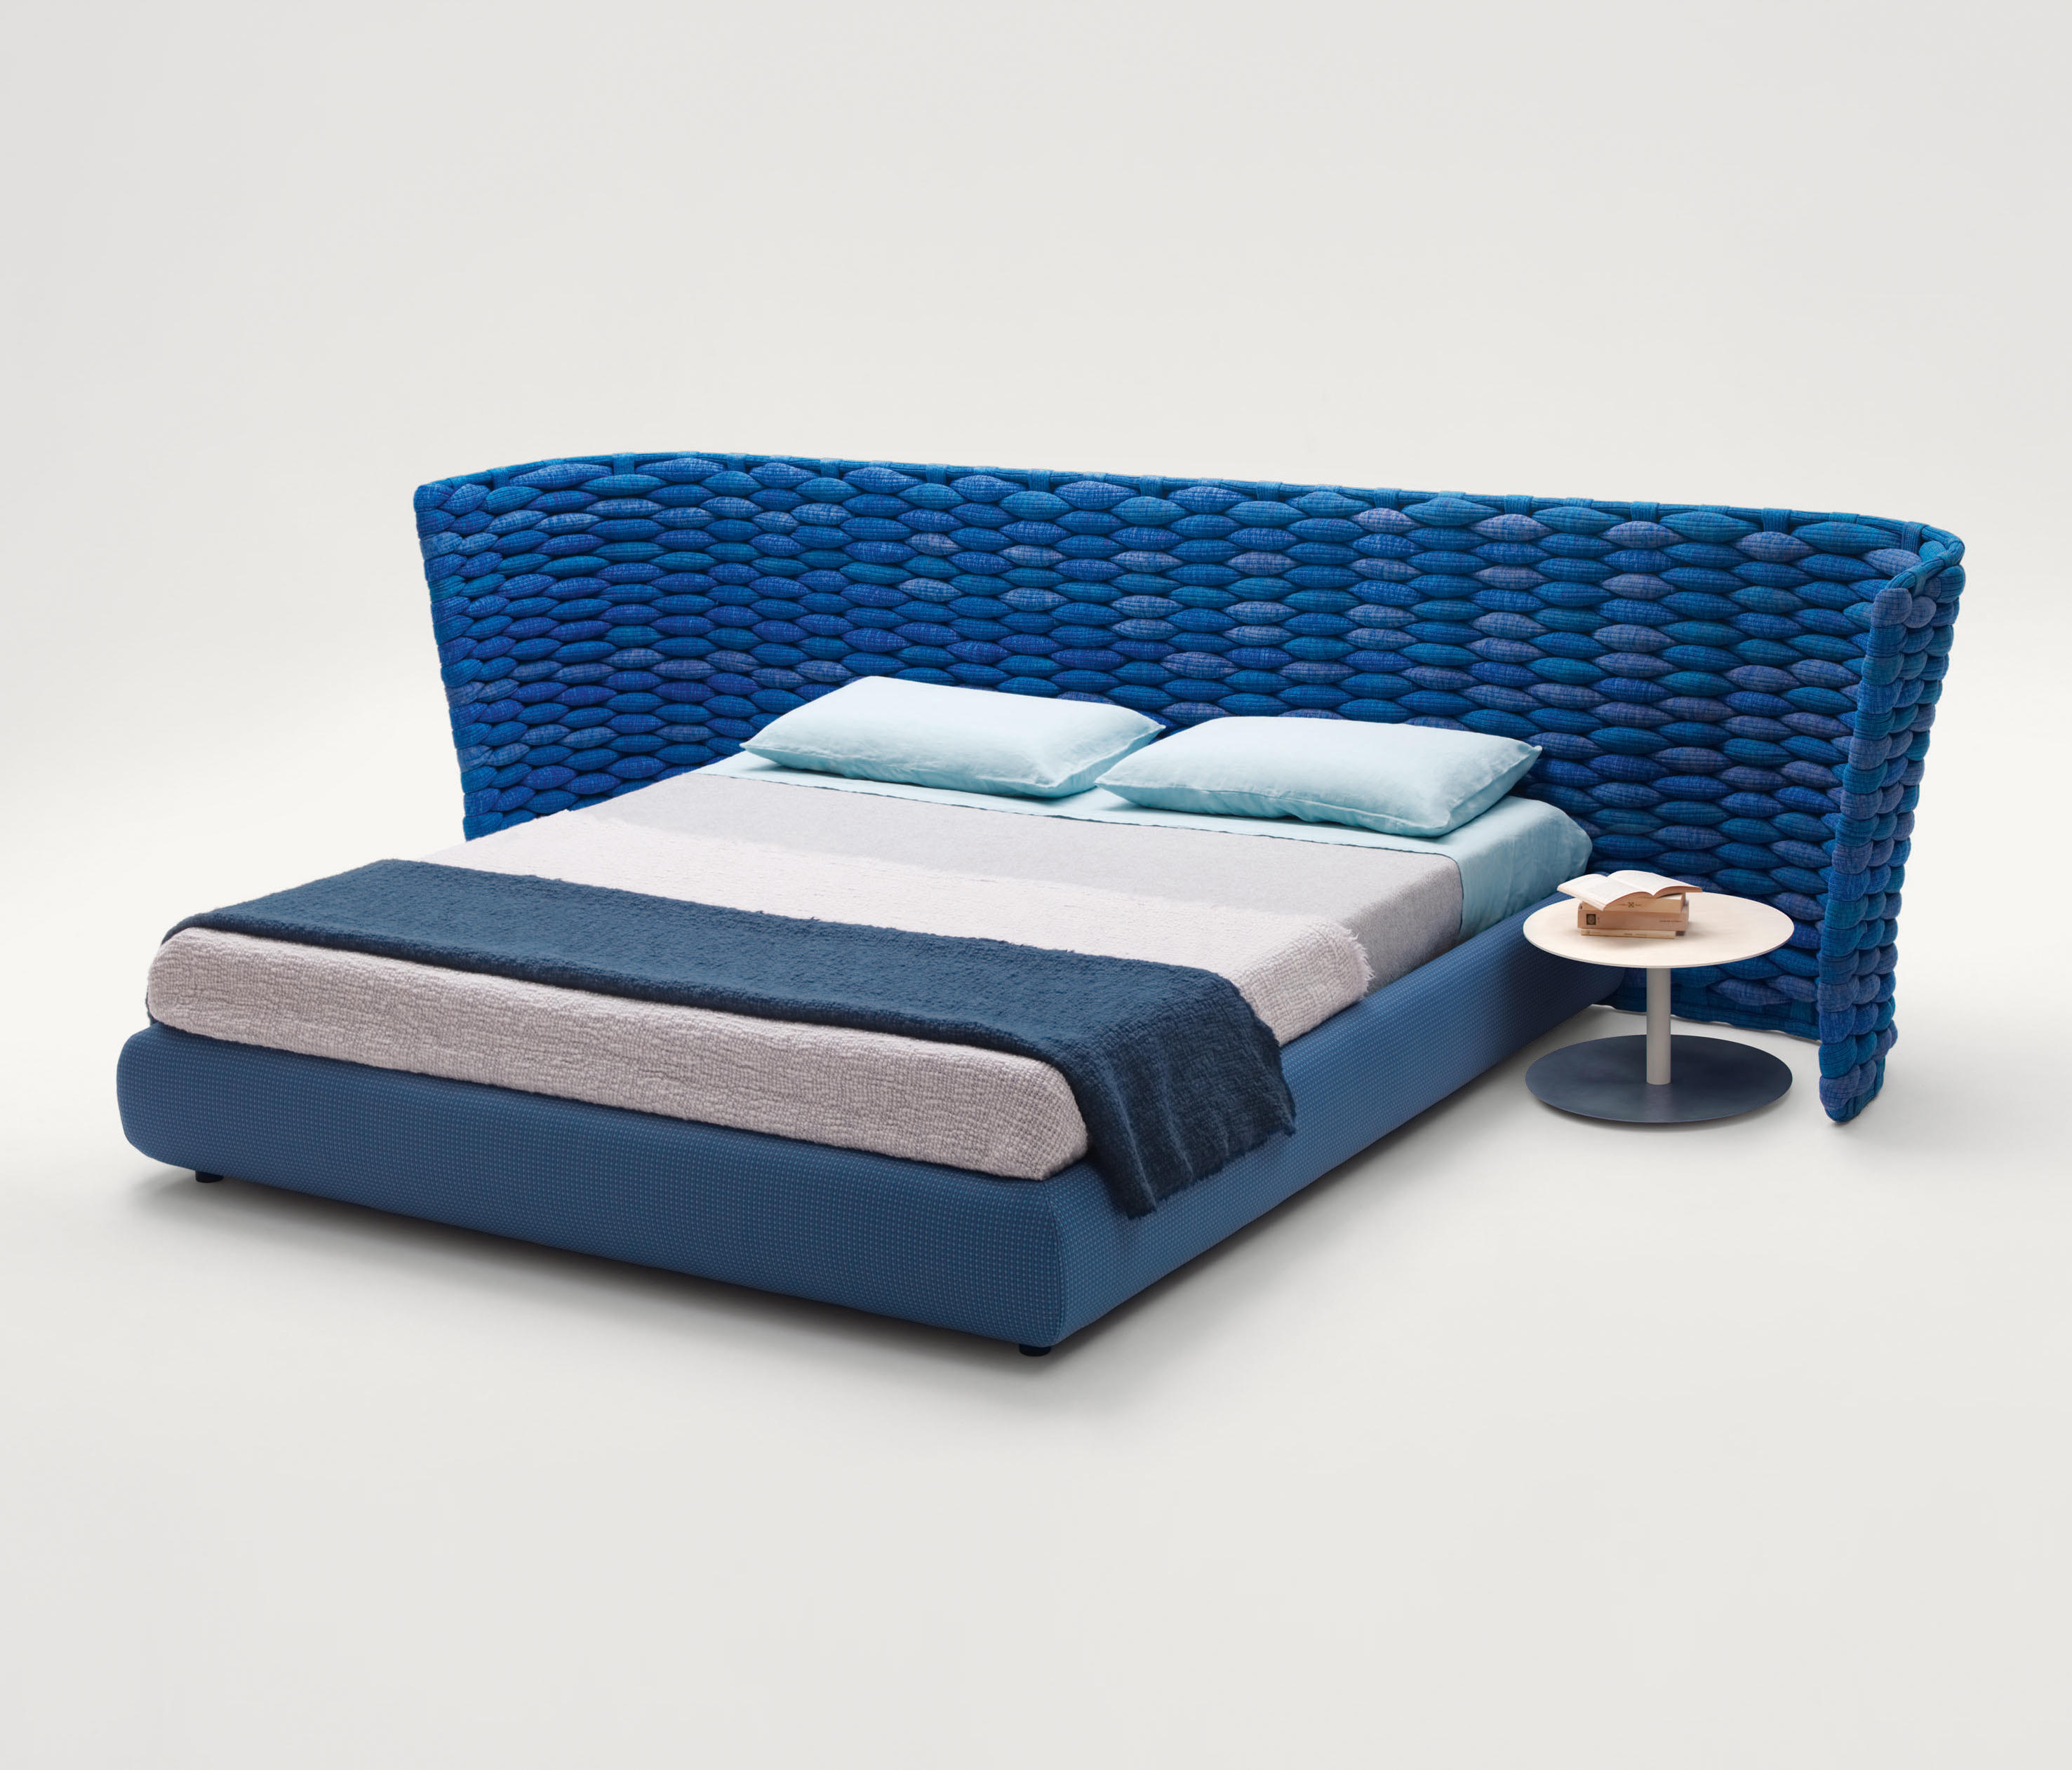 Silent Bed by Francesco Rota for Paola Lenti